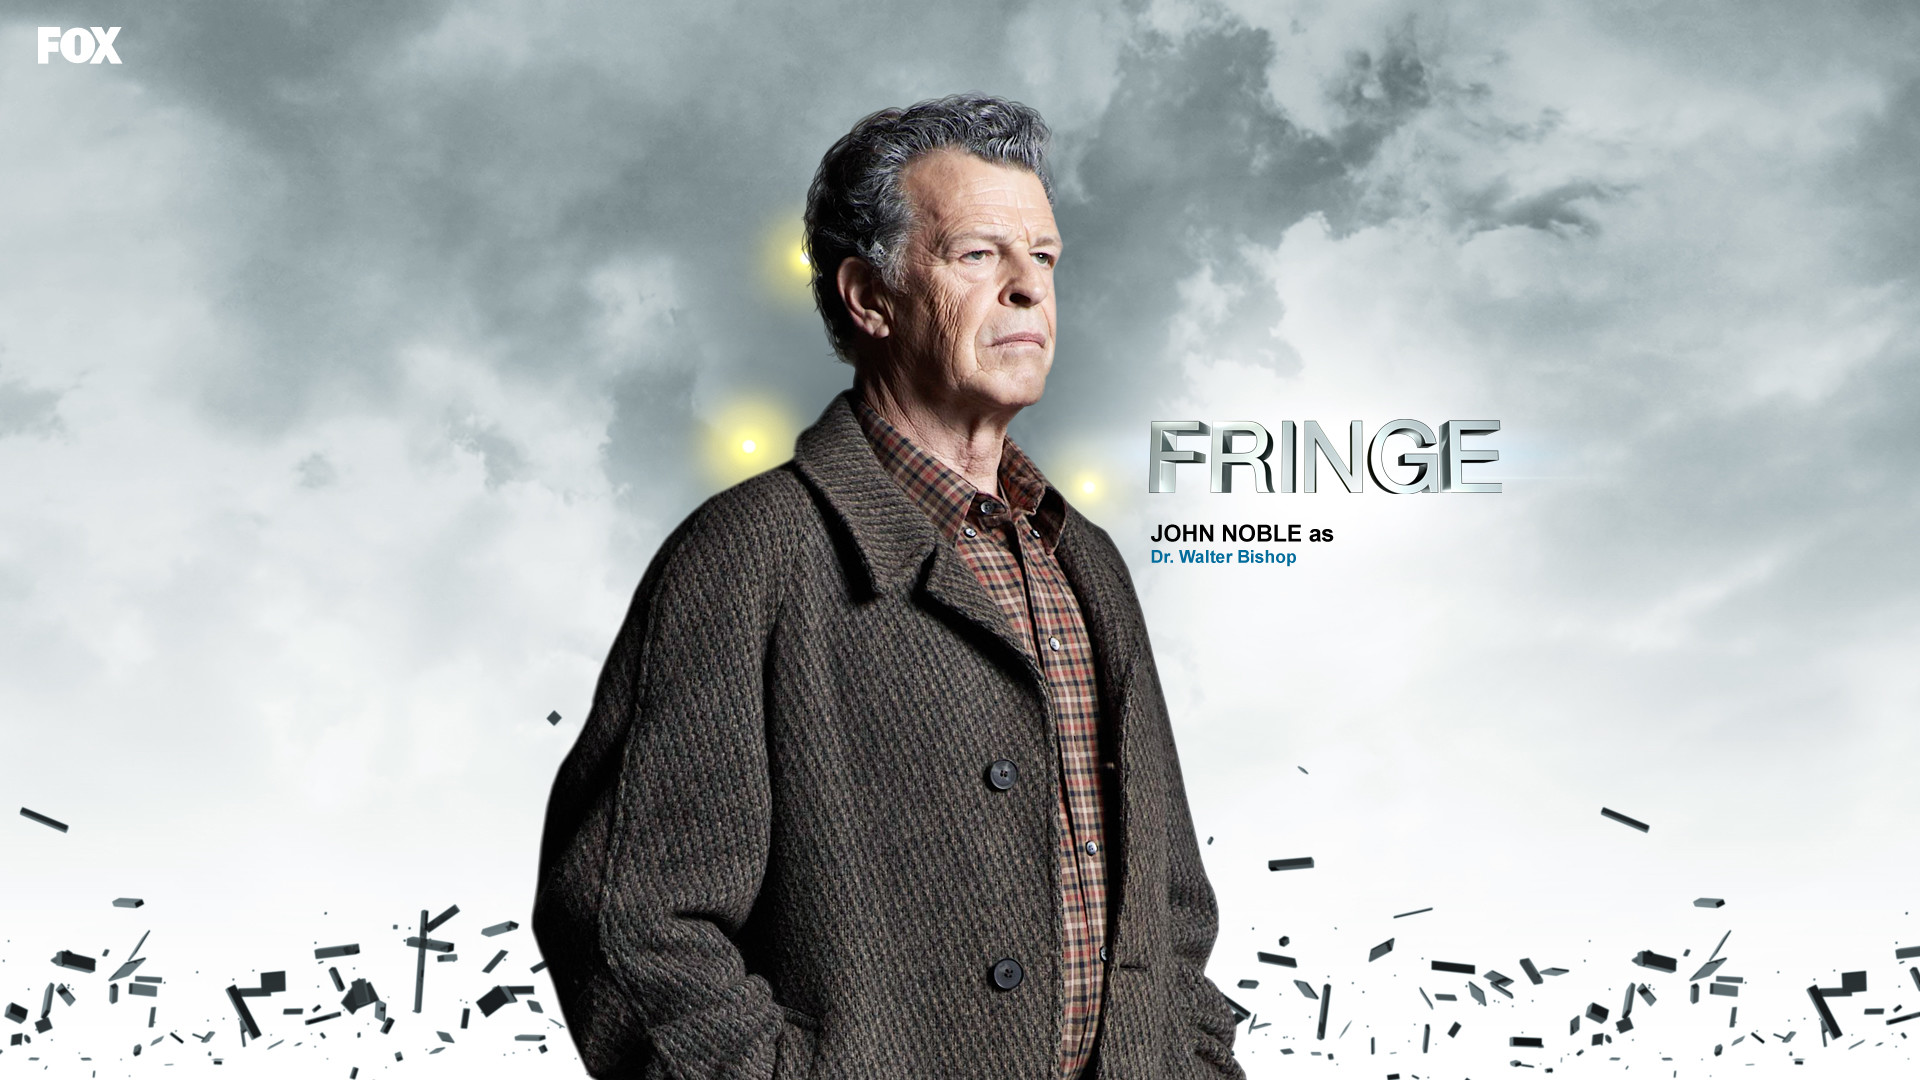 Here are some cool HD wallpapers of the geeky sci-fi TV show Fringe :